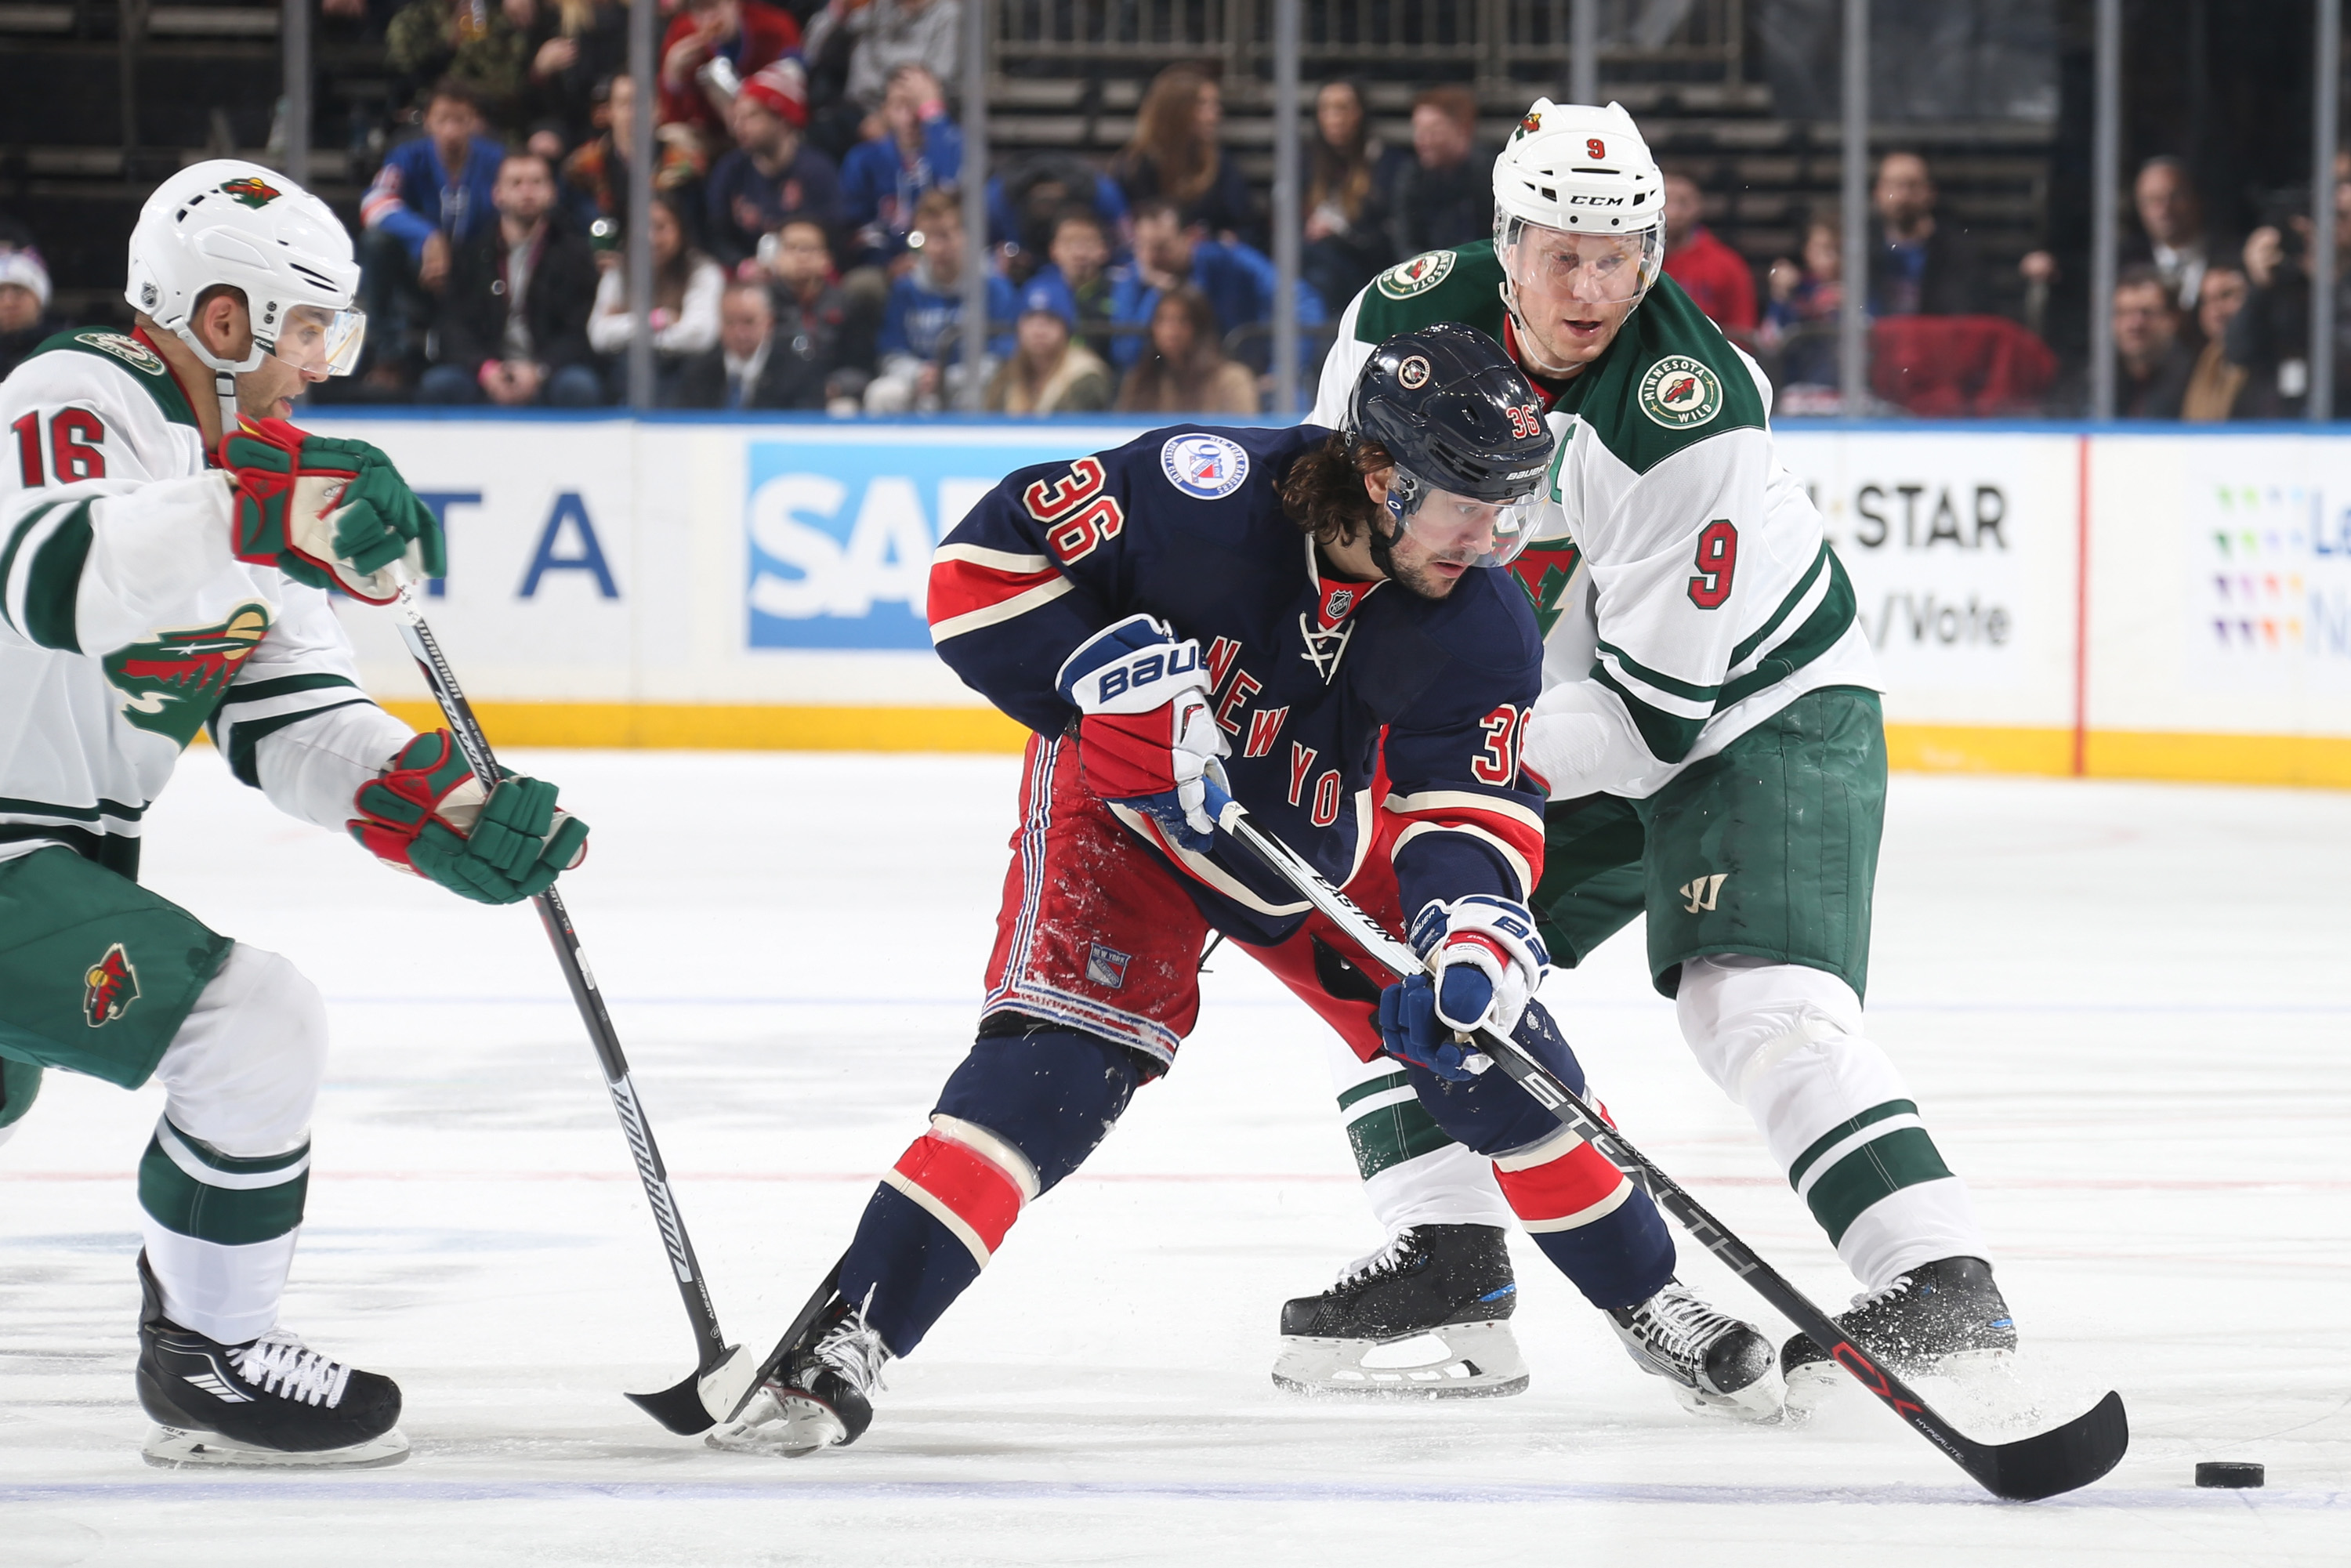 Mats Zuccarello of the New York Rangers skates with the puck against Mikko Koivu and Jason Zucker of the Minnesota Wild at Madison Square Garden on December 23, 2016 in New York City. The Minnesota Wild won 7-4.